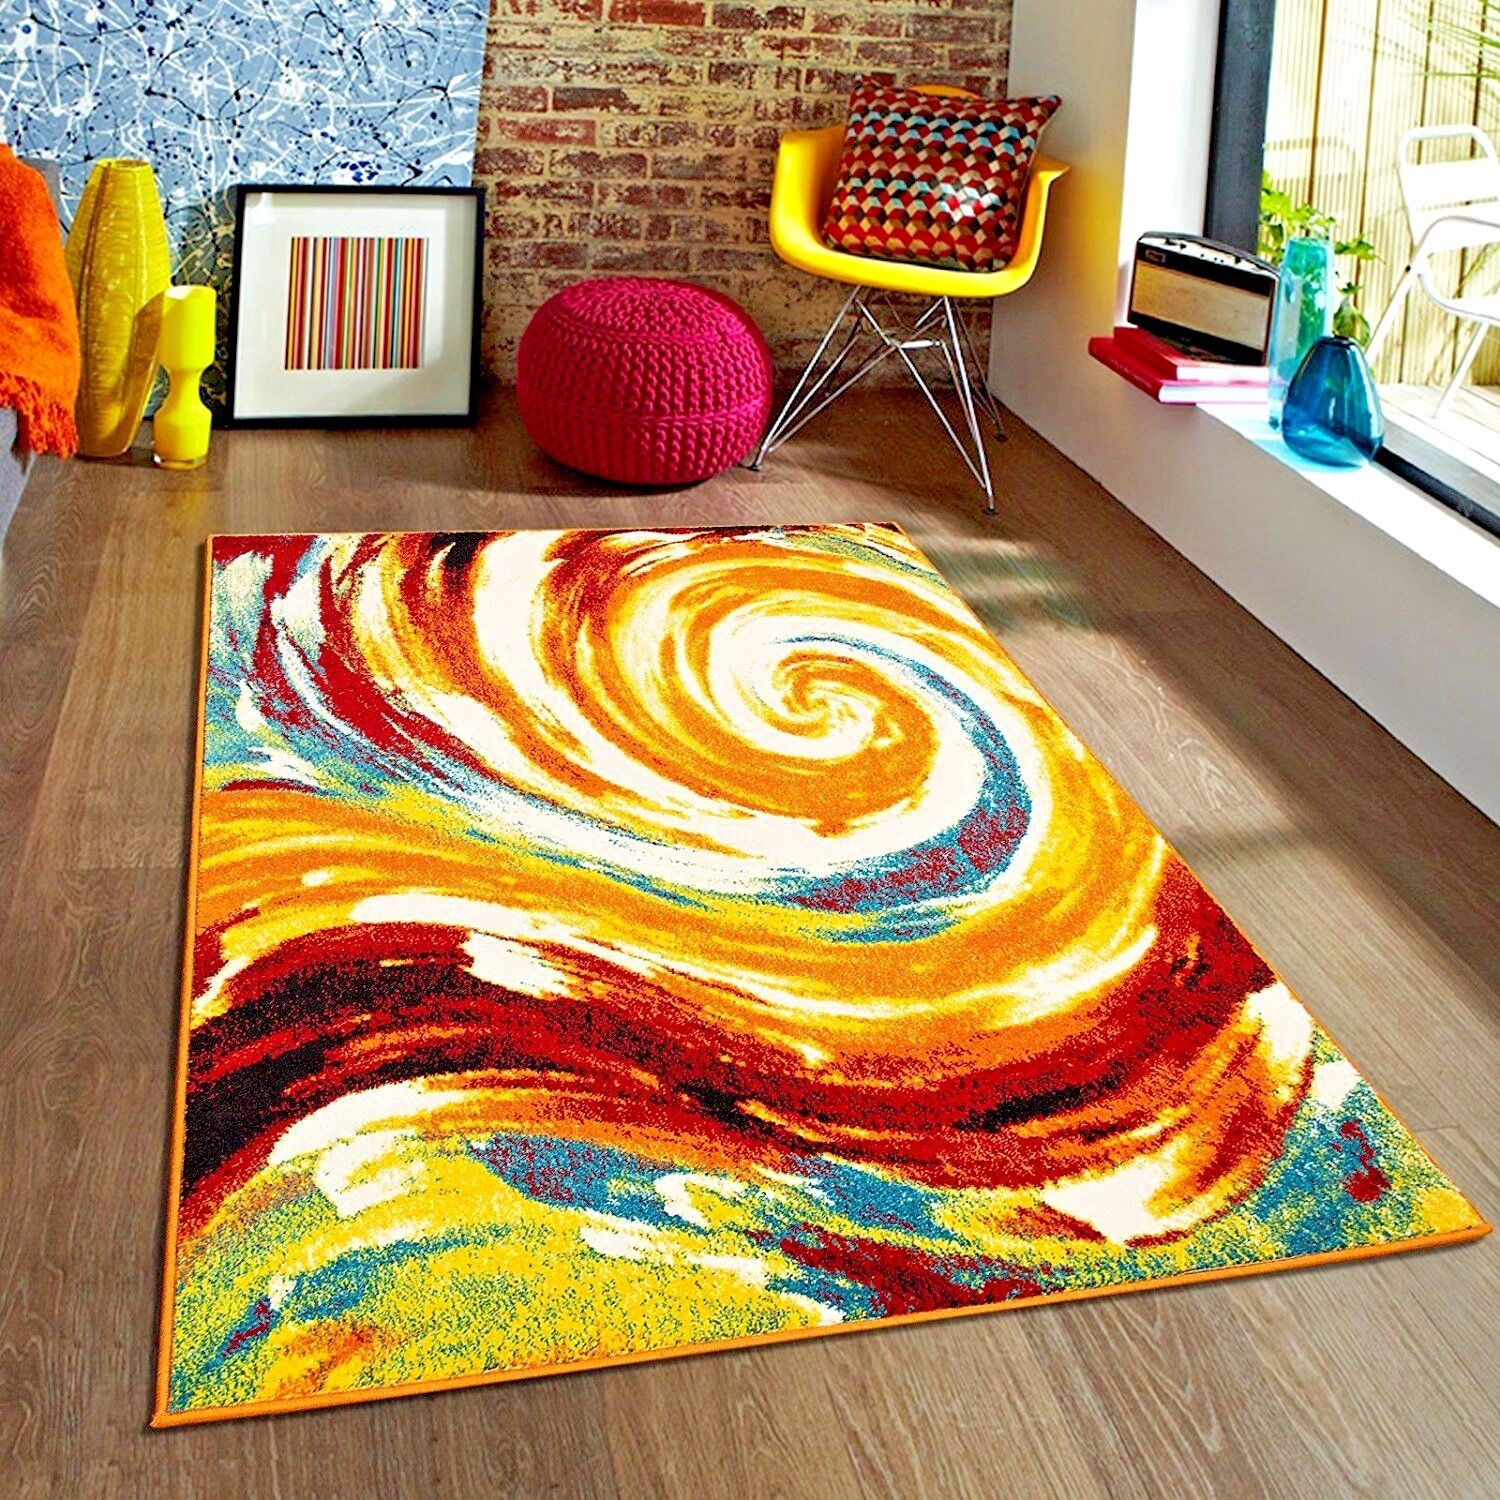 Rugs For Kids Details About Rugs Area Rugs 8x10 Rug Carpets Modern Large Floor Plush Big Colorful Kids Rugs